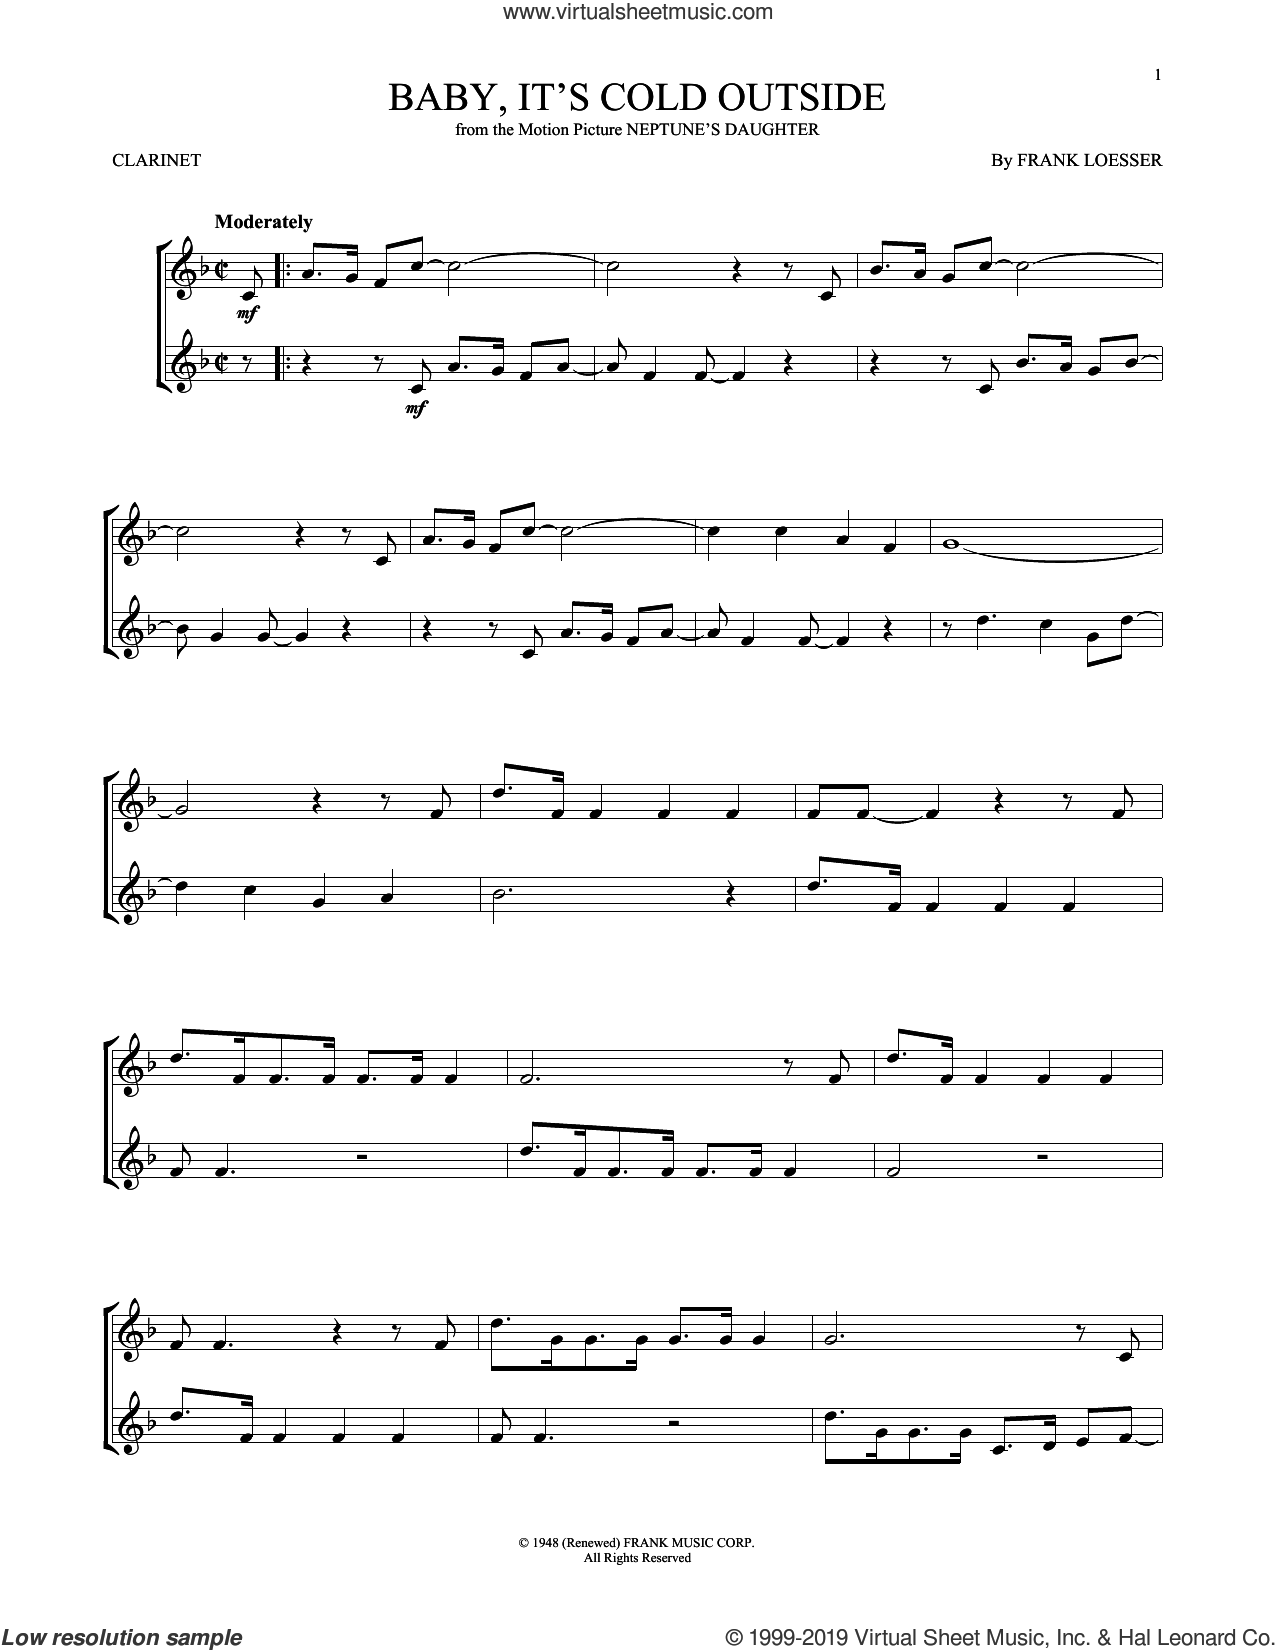 Baby, It's Cold Outside sheet music for clarinet solo by Frank Loesser, intermediate skill level